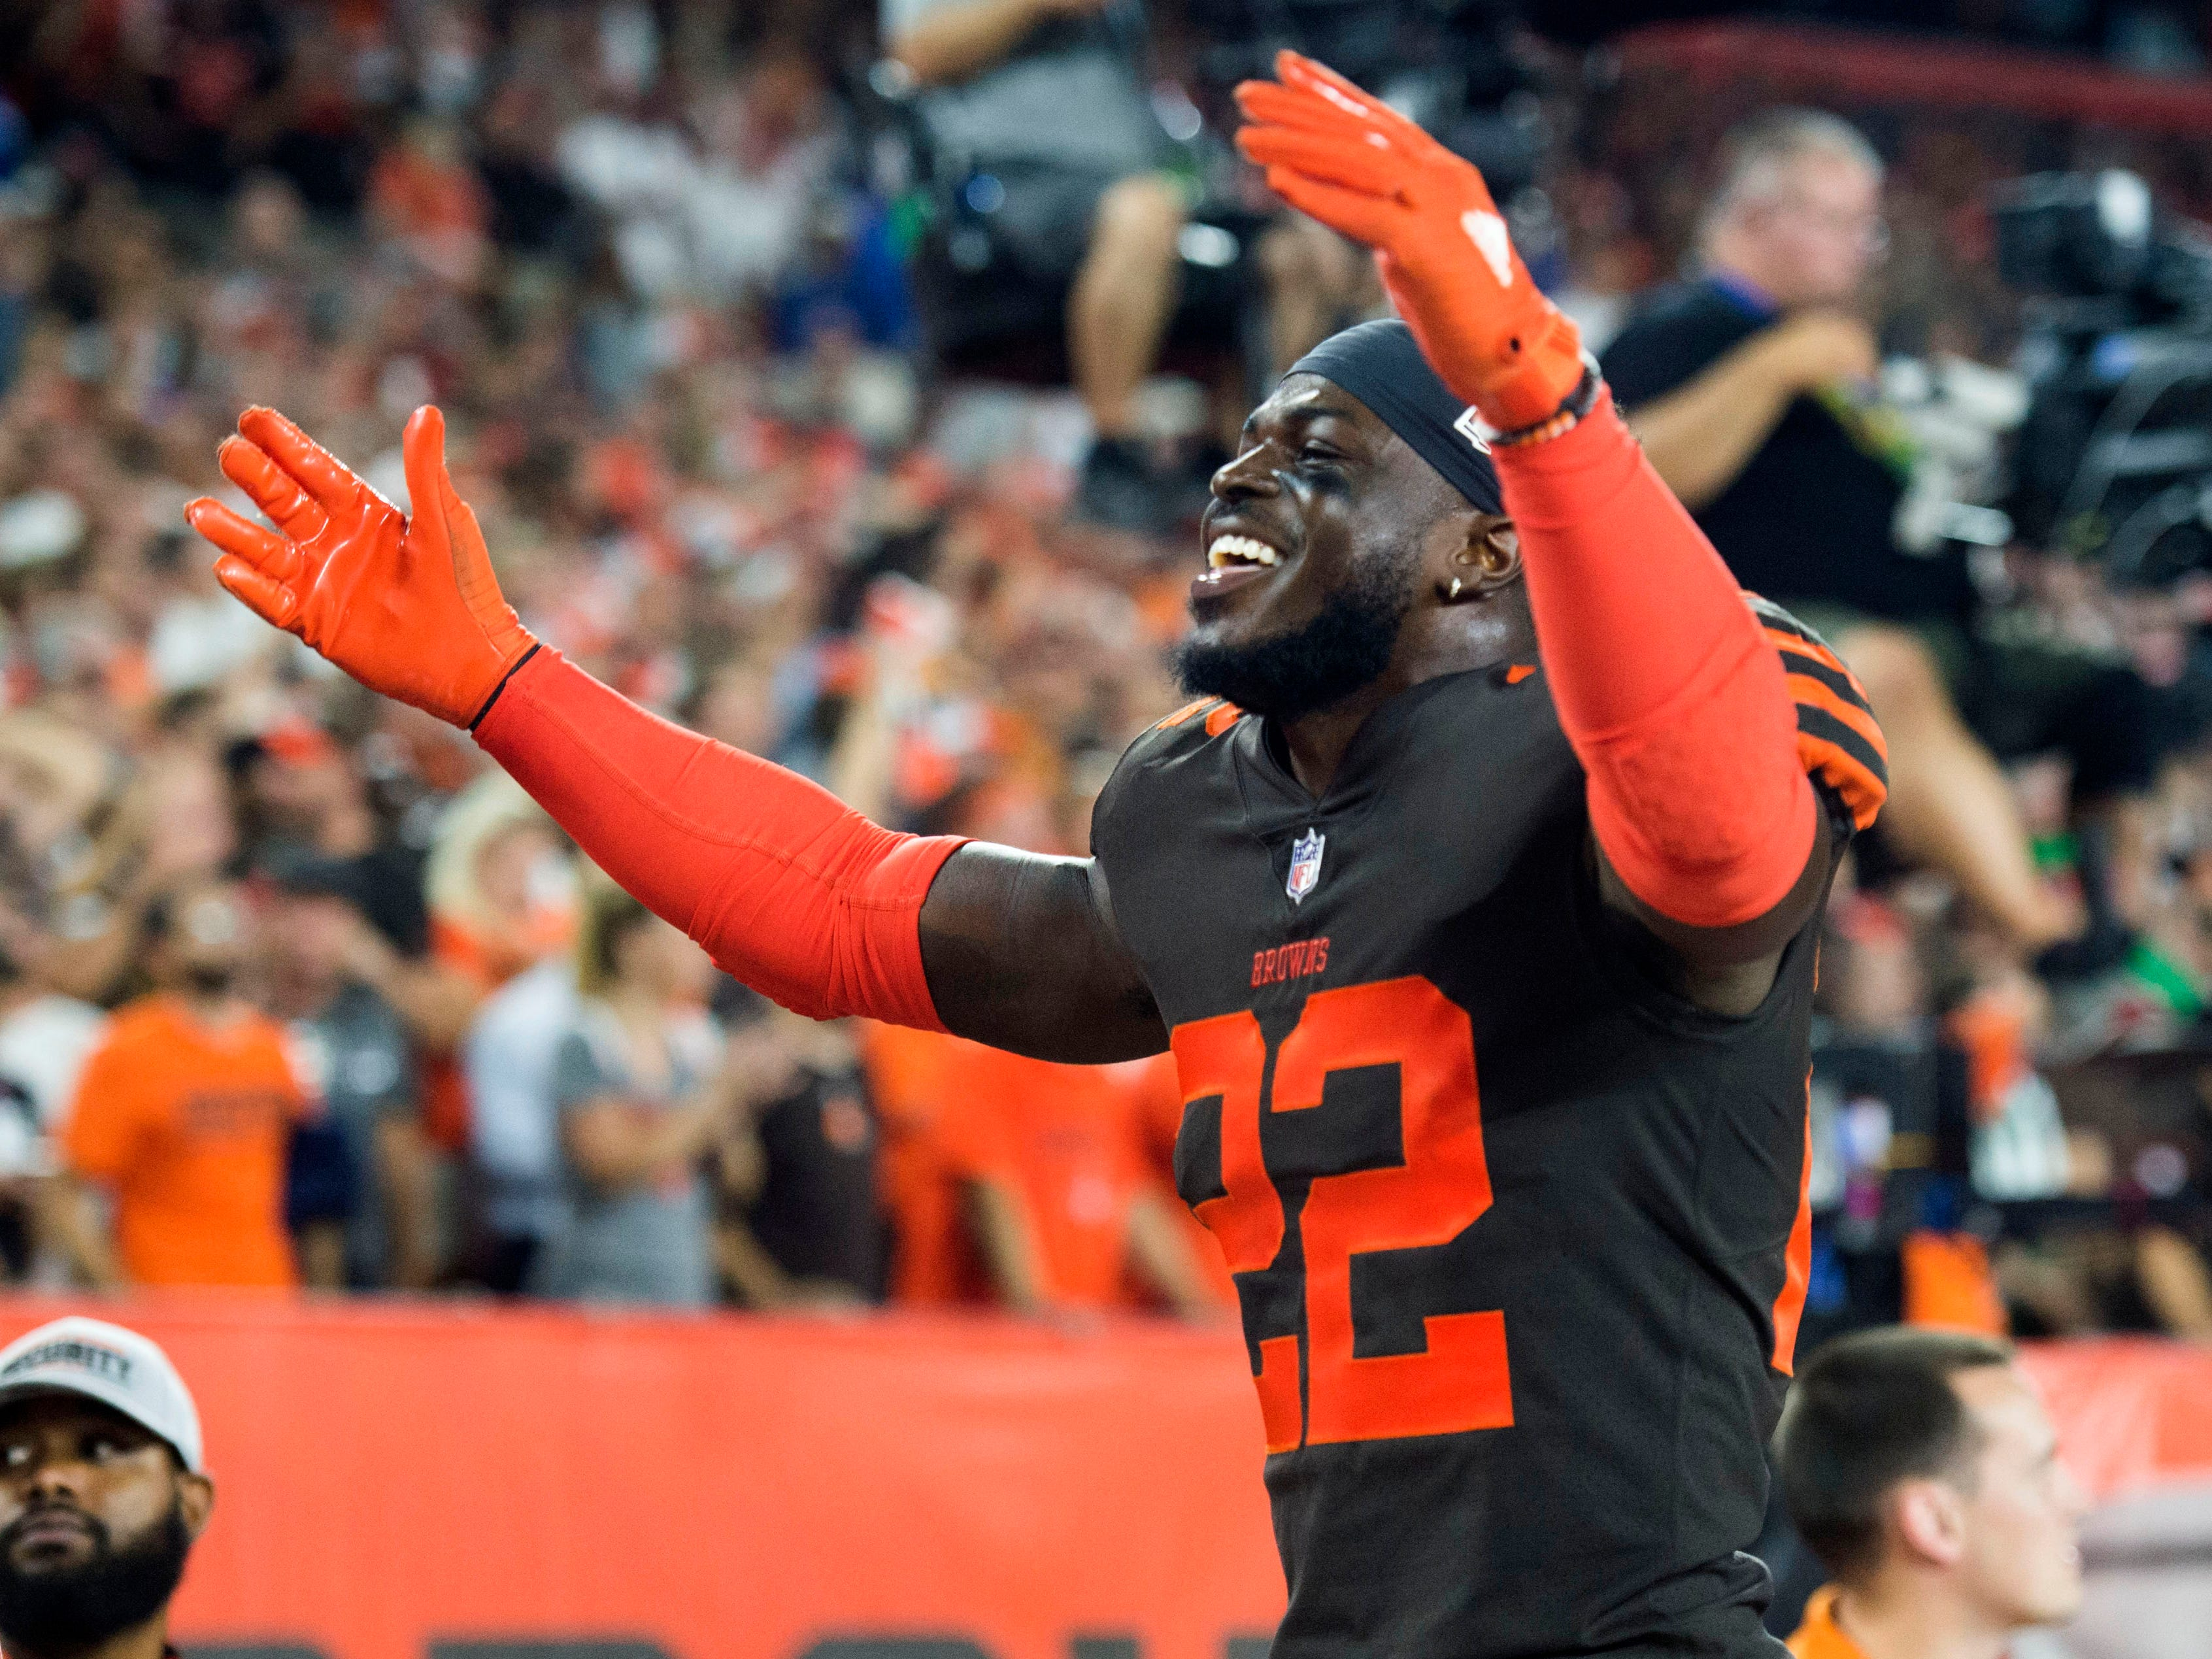 Cleveland Browns defensive back Jabrill Peppers motions to the crowd during the fourth quarter against the New York Jets at FirstEnergy Stadium.